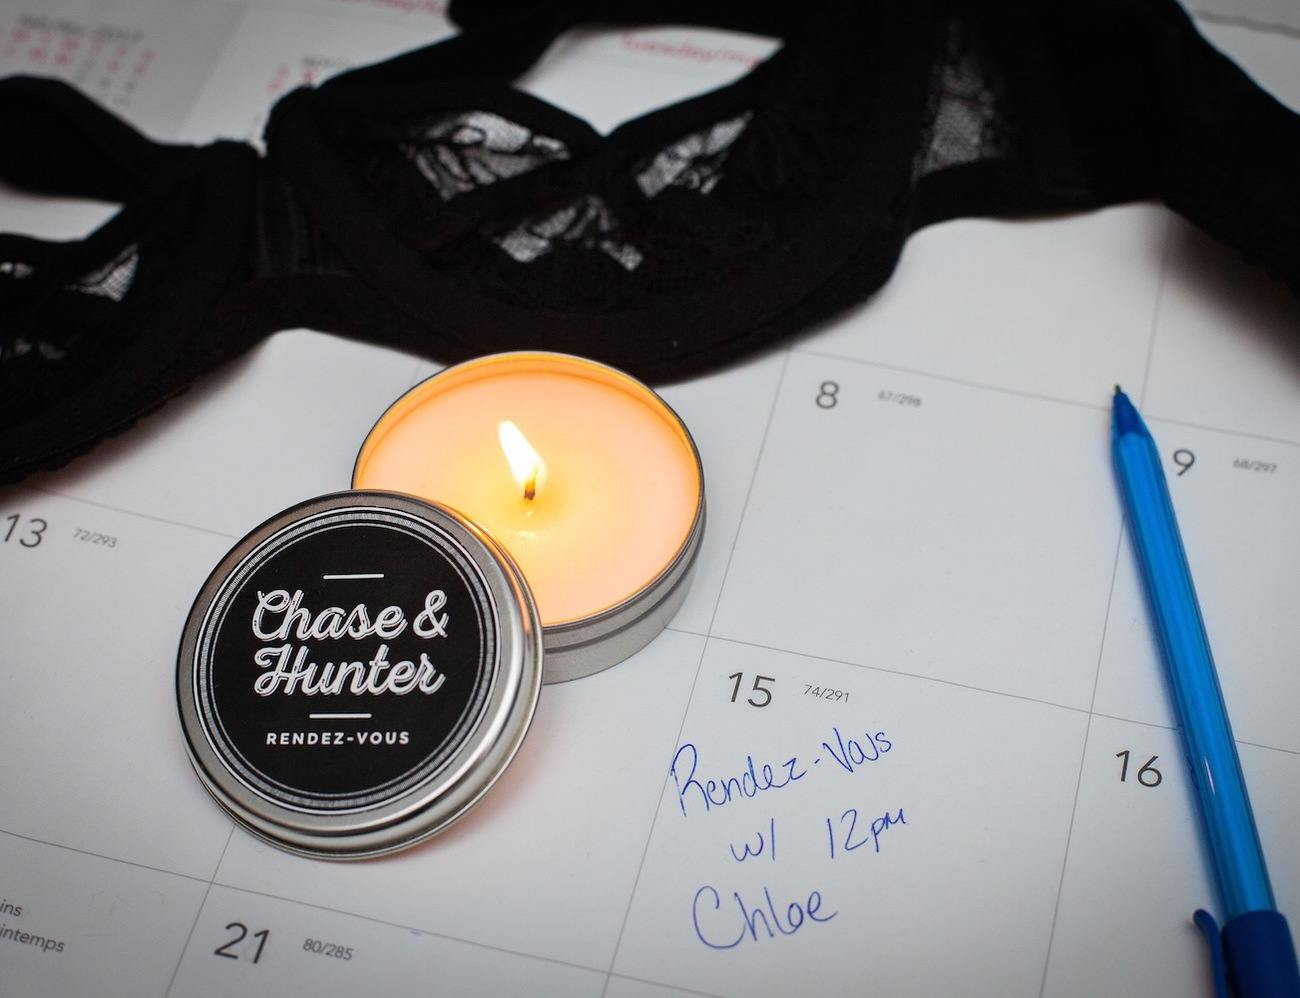 Chase & Hunter Candles – Tools for Men to Impress Her